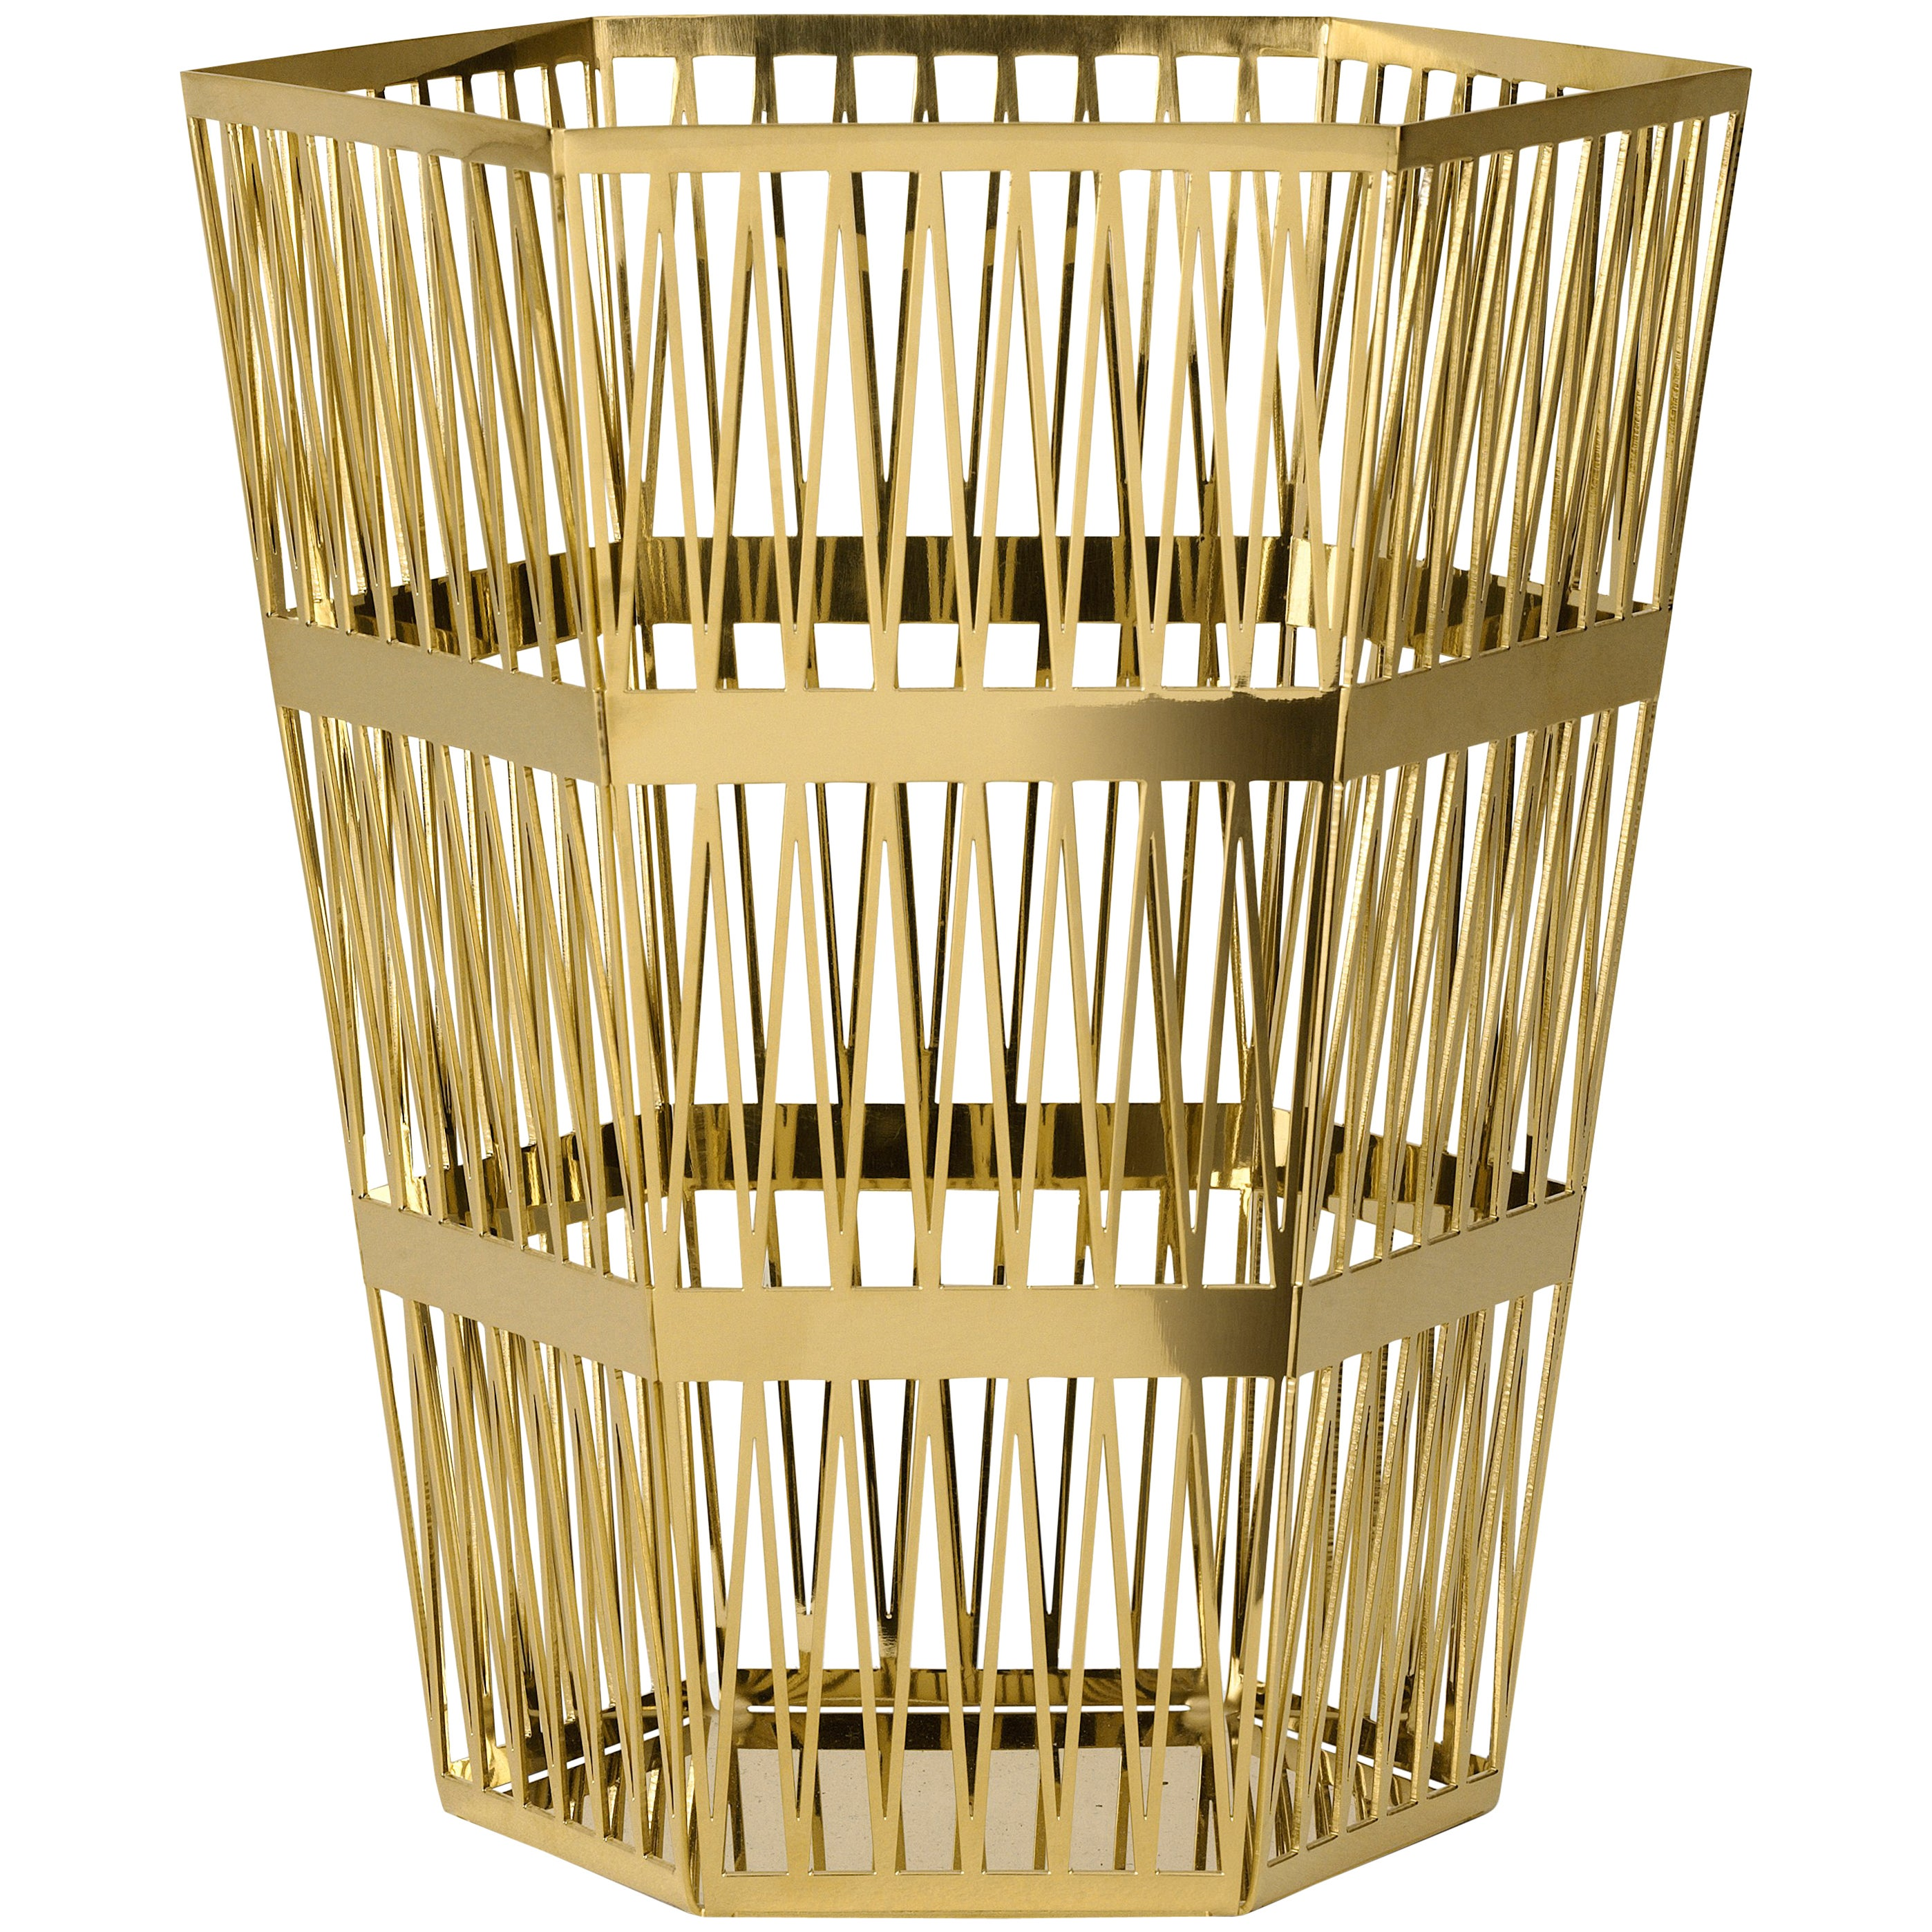 Ghidini 1961 Tip Top Large Paper Basket in Gold by Richard Hutten